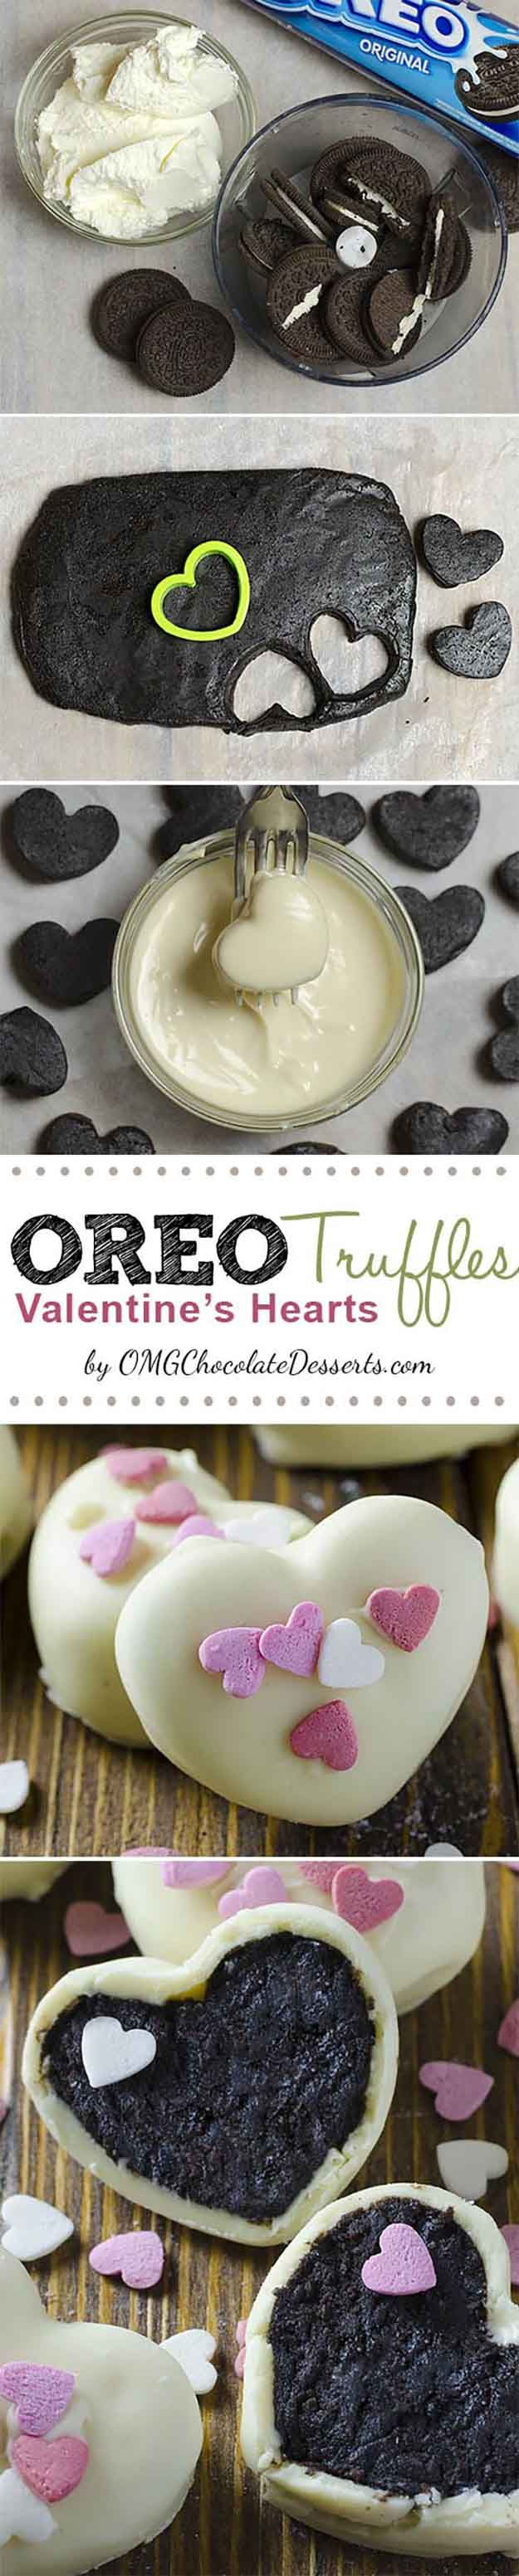 Oreo Truffle Valentines Hearts | 25 Valentines Day Treats That Look Way Too Good to Eat | Beautiful Homemade Gifts For Your Love Ones by DIY Ready at http://diyready.com/valentines-day-treats-that-looks-too-good-to-eat/                                                                                                                                                                                 More